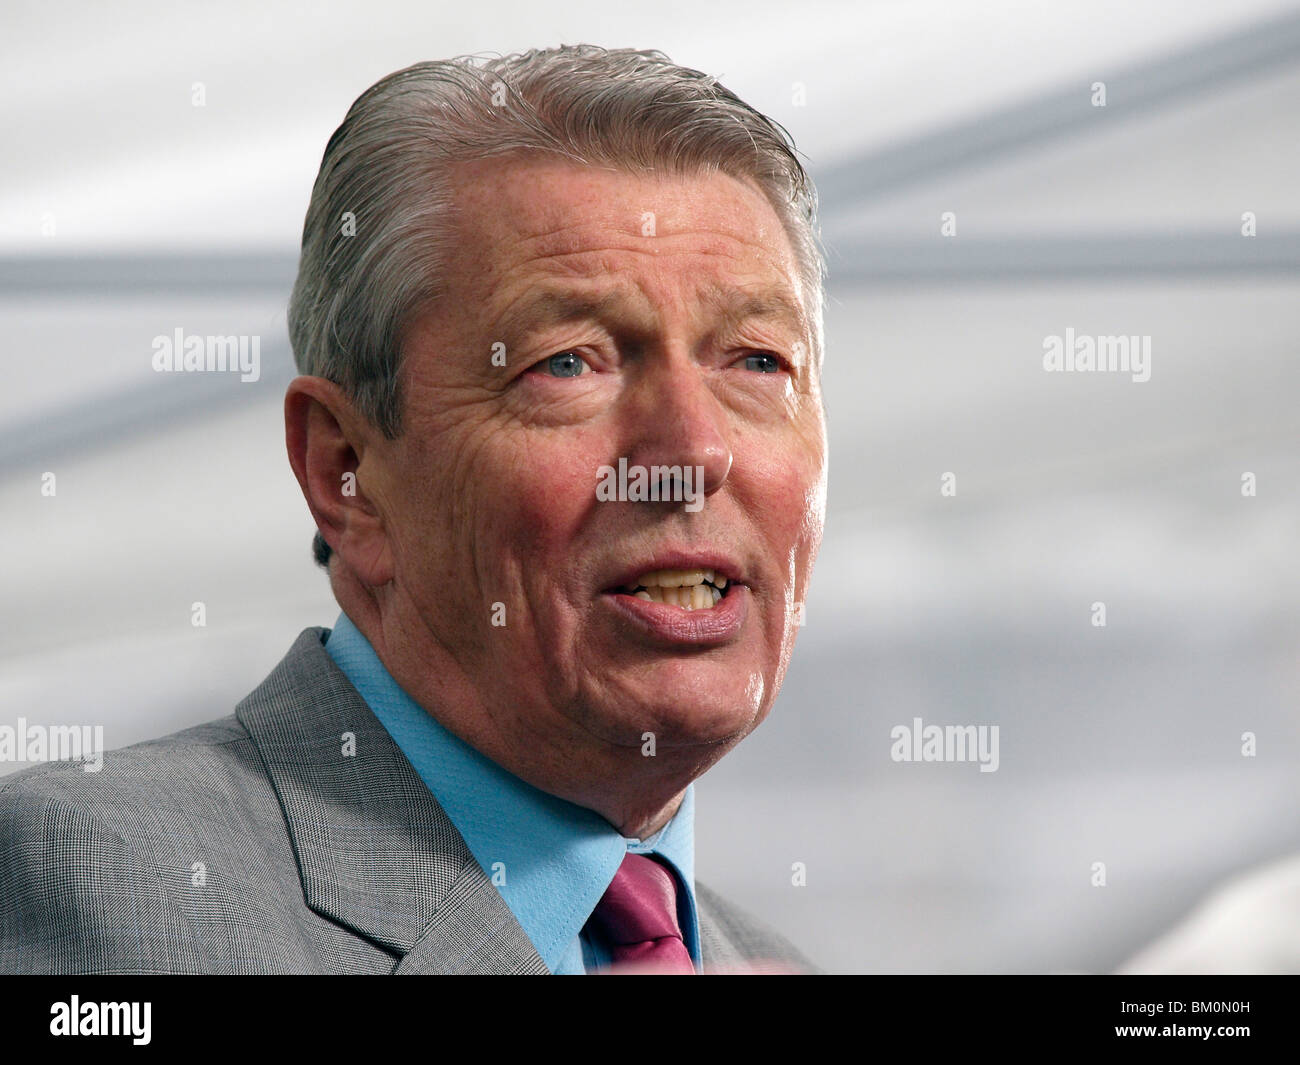 Former Labour Home Secretary Alan Johnson MP speaking to the media on College Green outside Parliament on 11th May - Stock Image